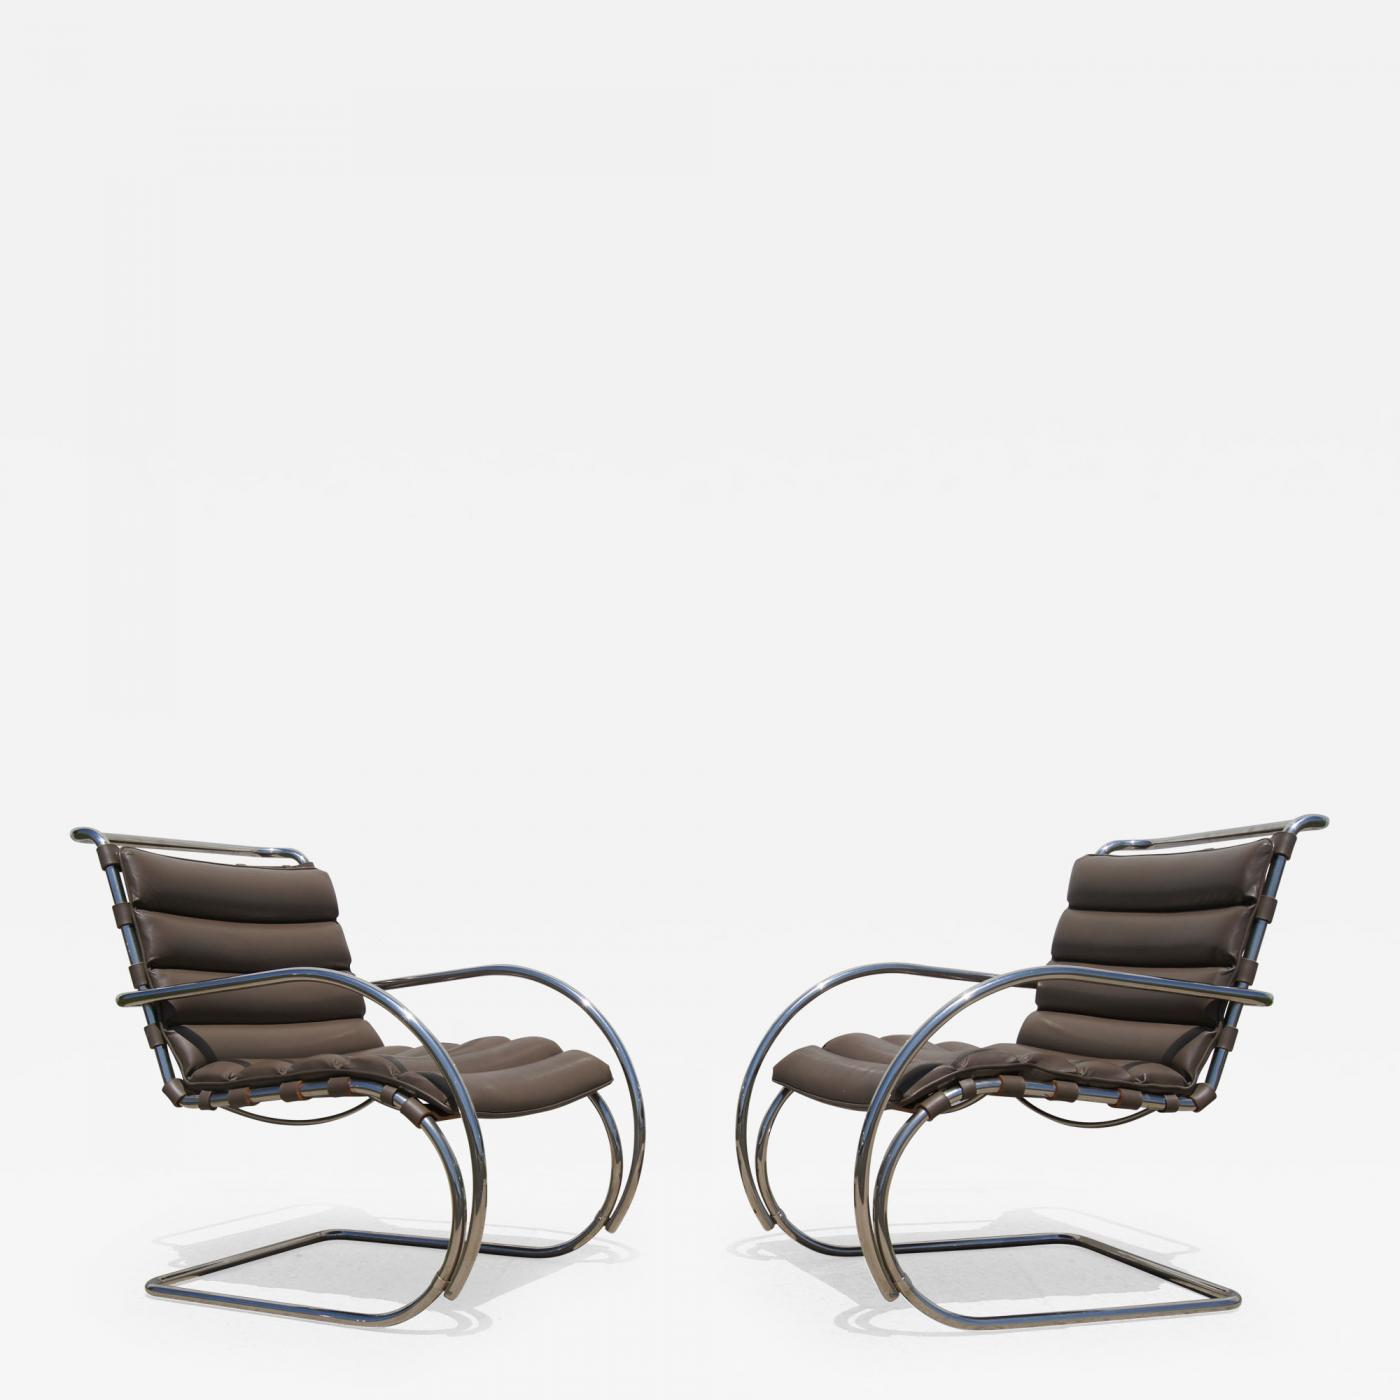 Fine Ludwig Mies Van Der Rohe Pair Of Brown Leather Mr Lounge Armchairs By Mies Van Der Rohe For Knoll Squirreltailoven Fun Painted Chair Ideas Images Squirreltailovenorg